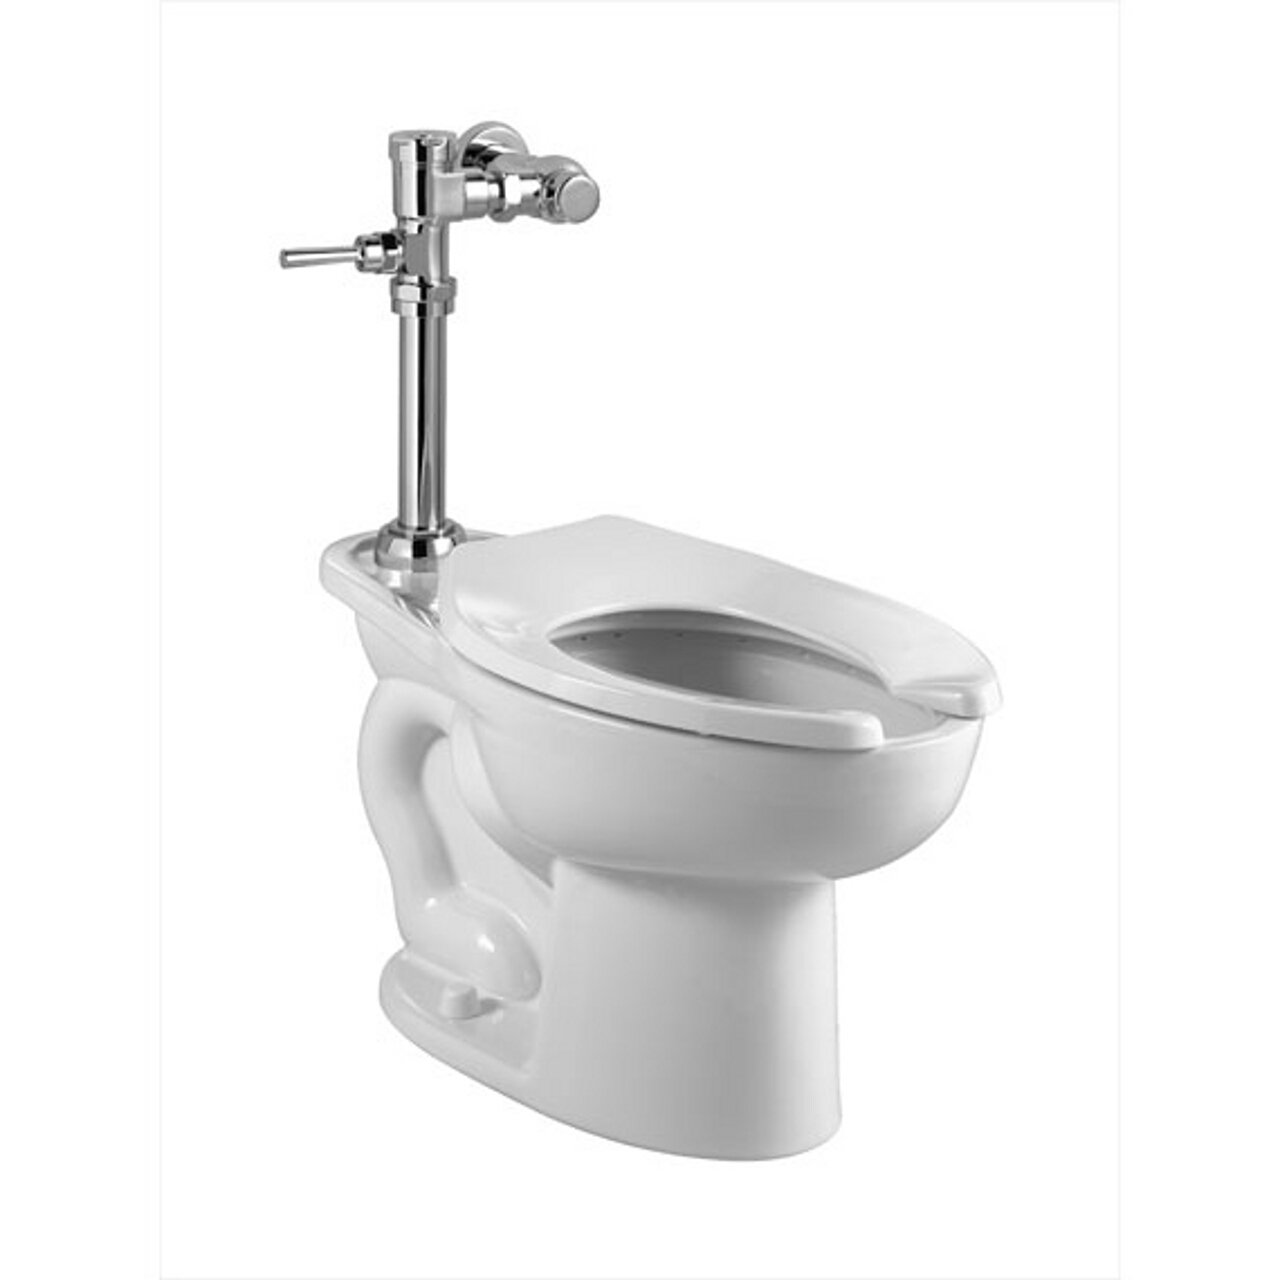 American Standard 2858.128.020 Madera 1.28 GPF Elongated Toilet with Manual Flush Valve, White